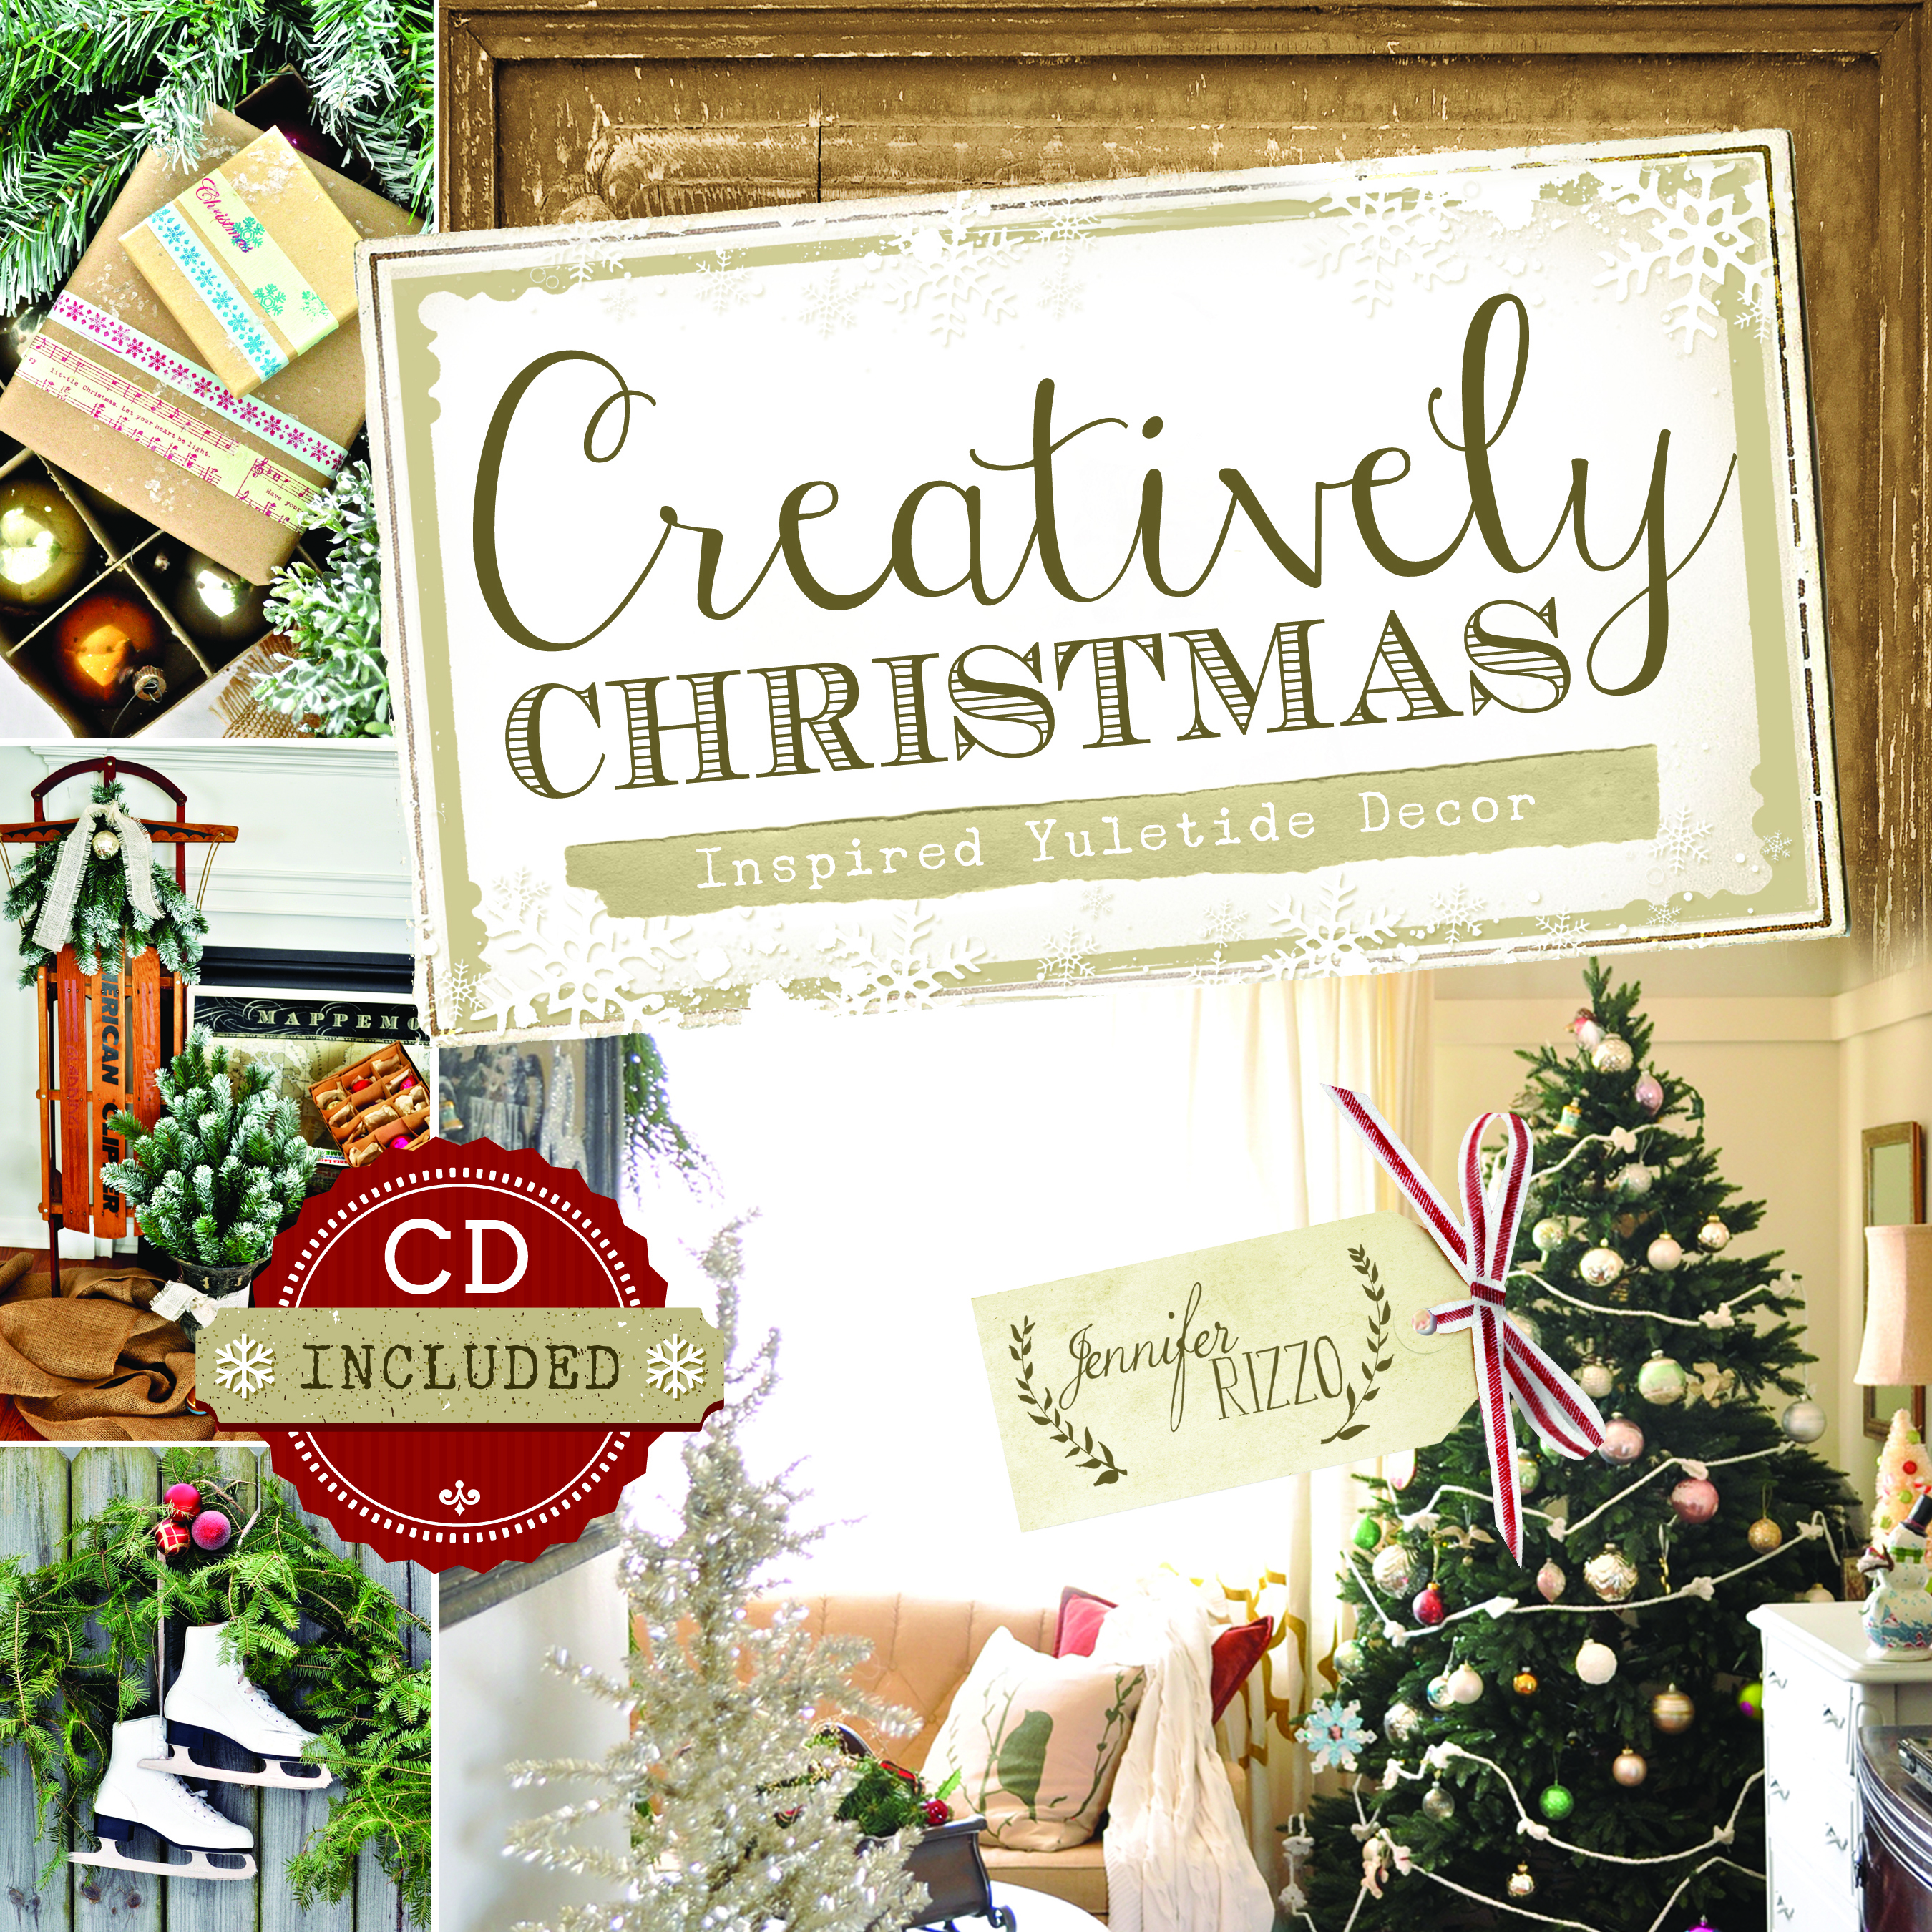 Creatively Christmas and Dreams Coming True